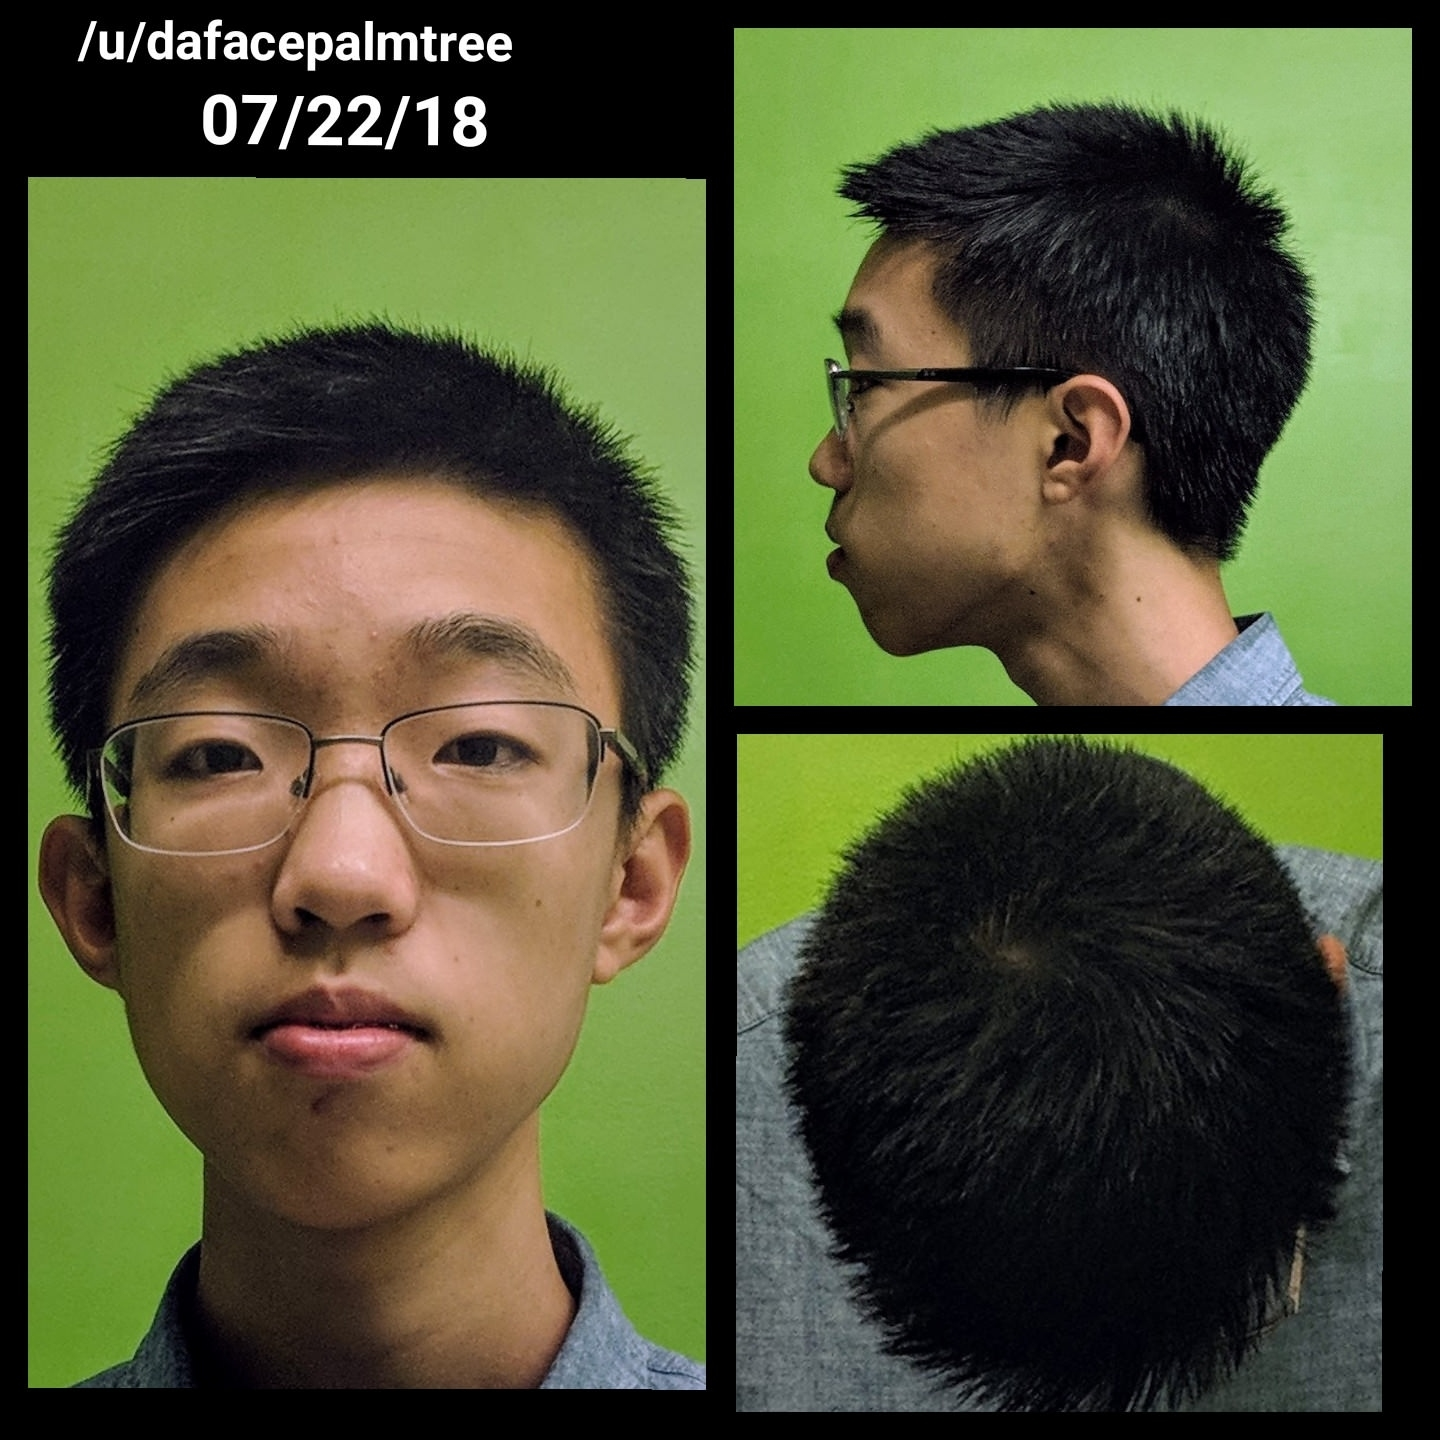 Hairstyle Advice For Straight, Thin Asian Hair Profile? : Malehairadvice throughout Premier Asian Hairstyles Thin Hair